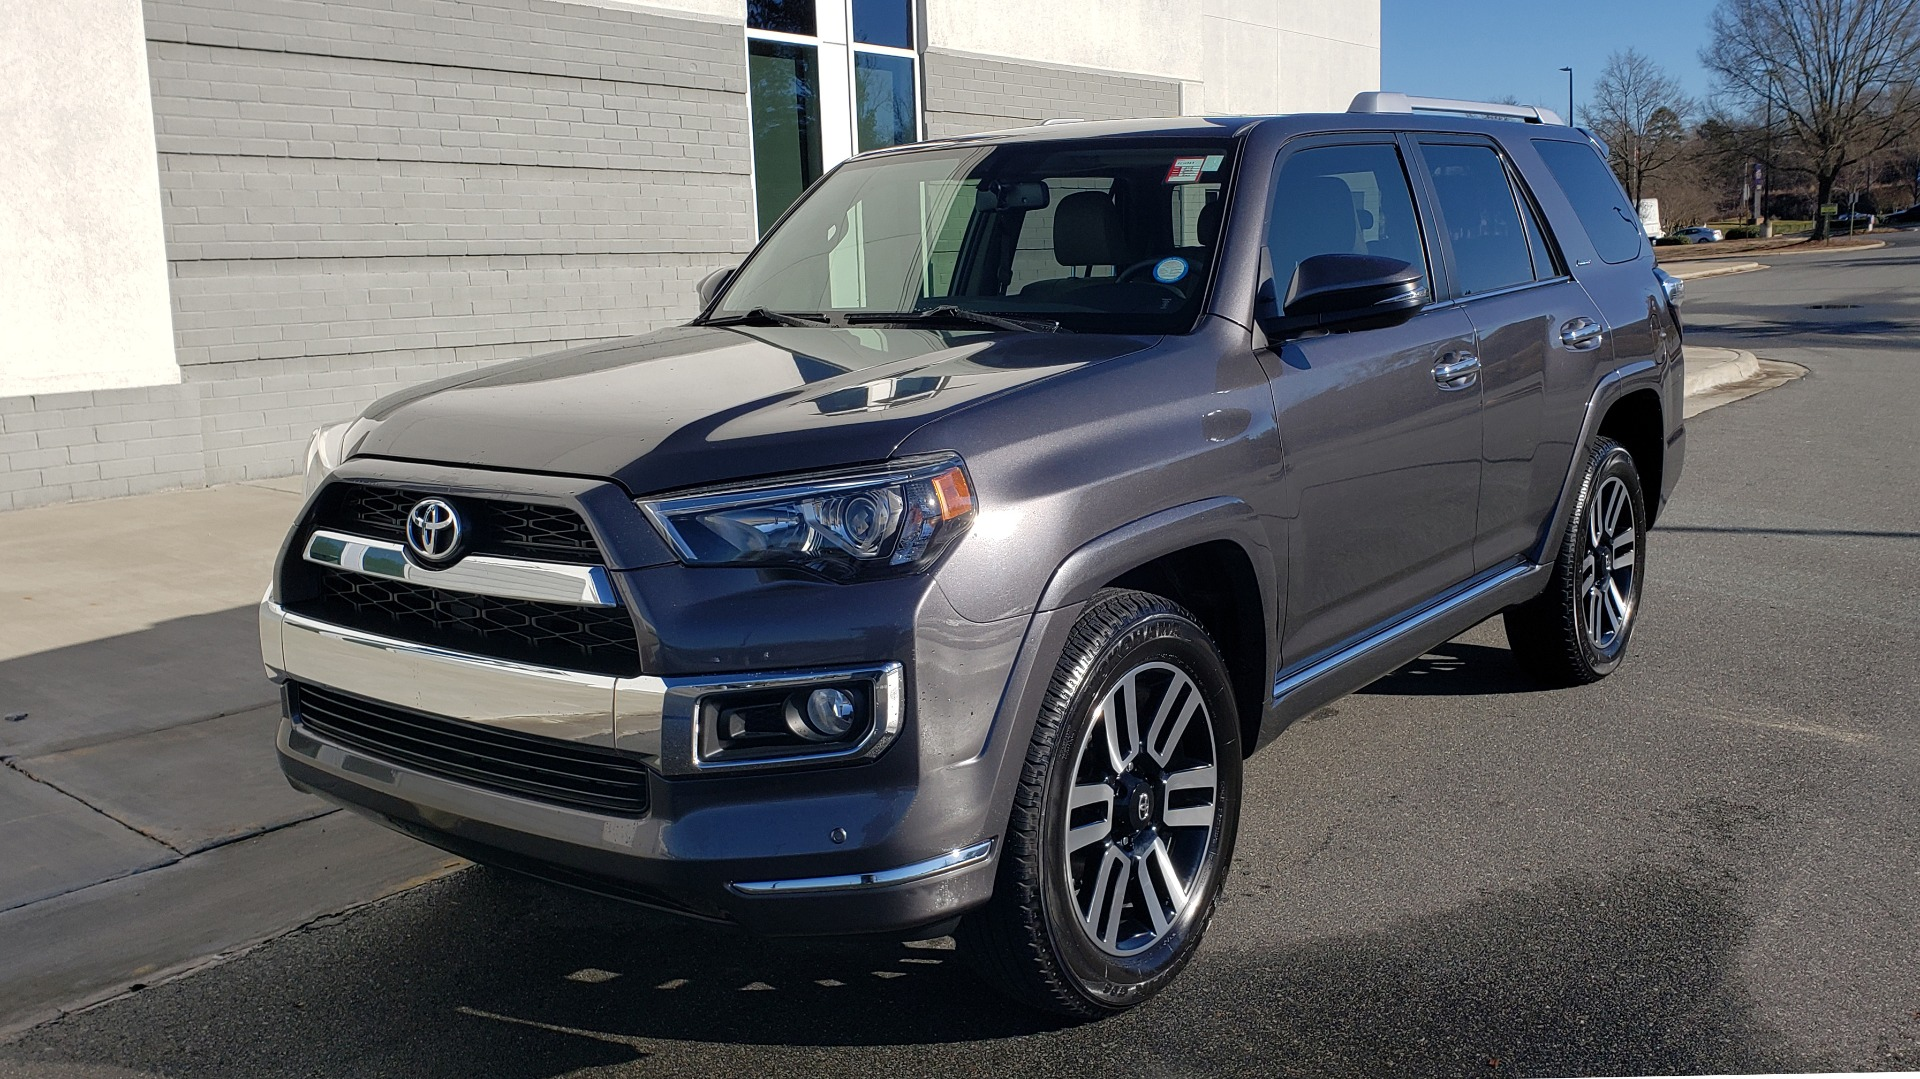 Used 2018 Toyota 4RUNNER LIMITED 4X4 / 4.0 V6 / AUTO / NAV / SUNROOF / REARVIEW for sale Sold at Formula Imports in Charlotte NC 28227 1